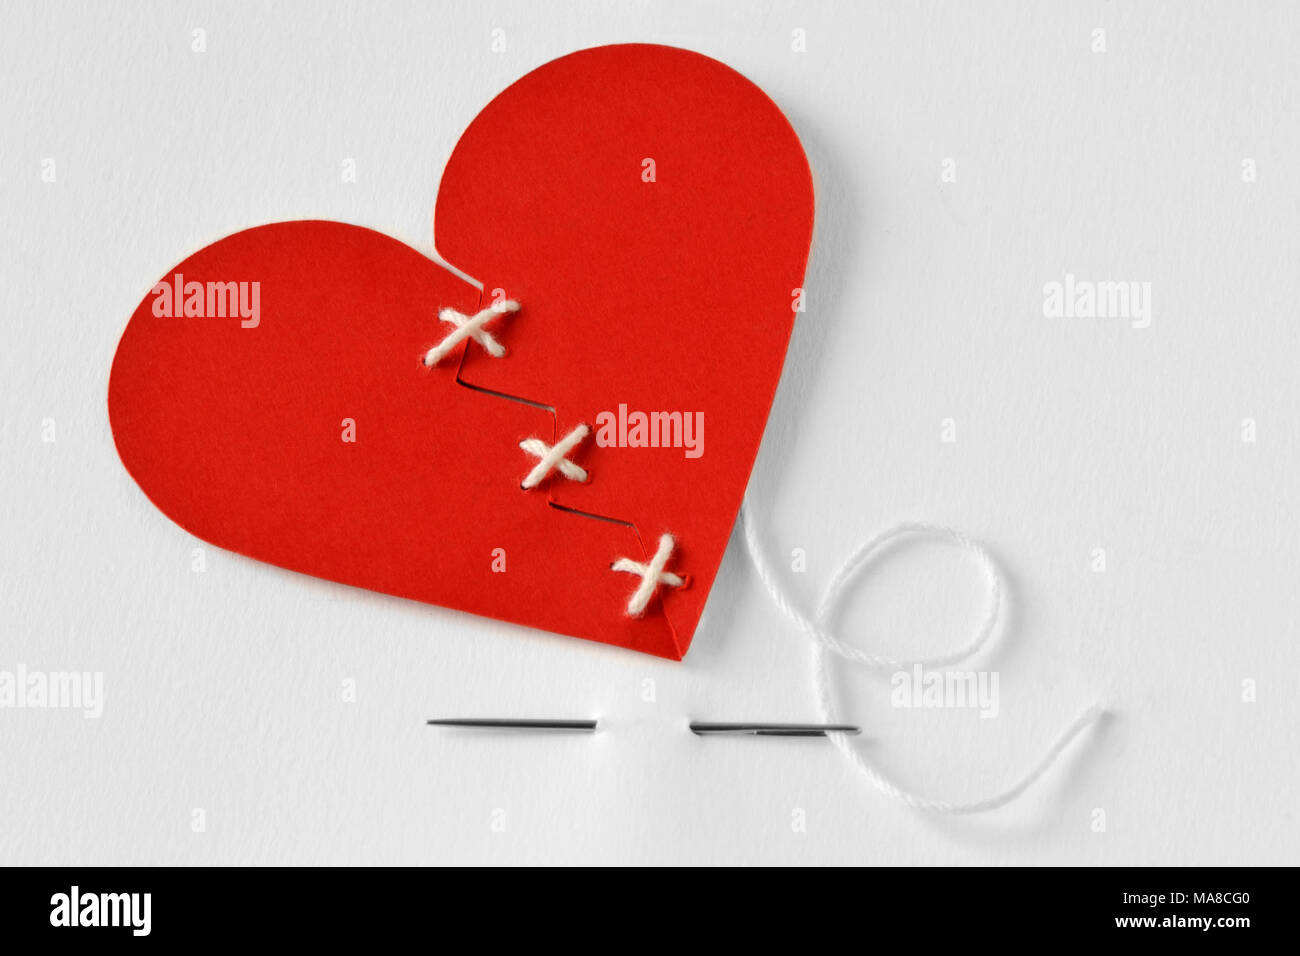 Paper broken heart sewn with needle and thread - Love troubles concept - Stock Image